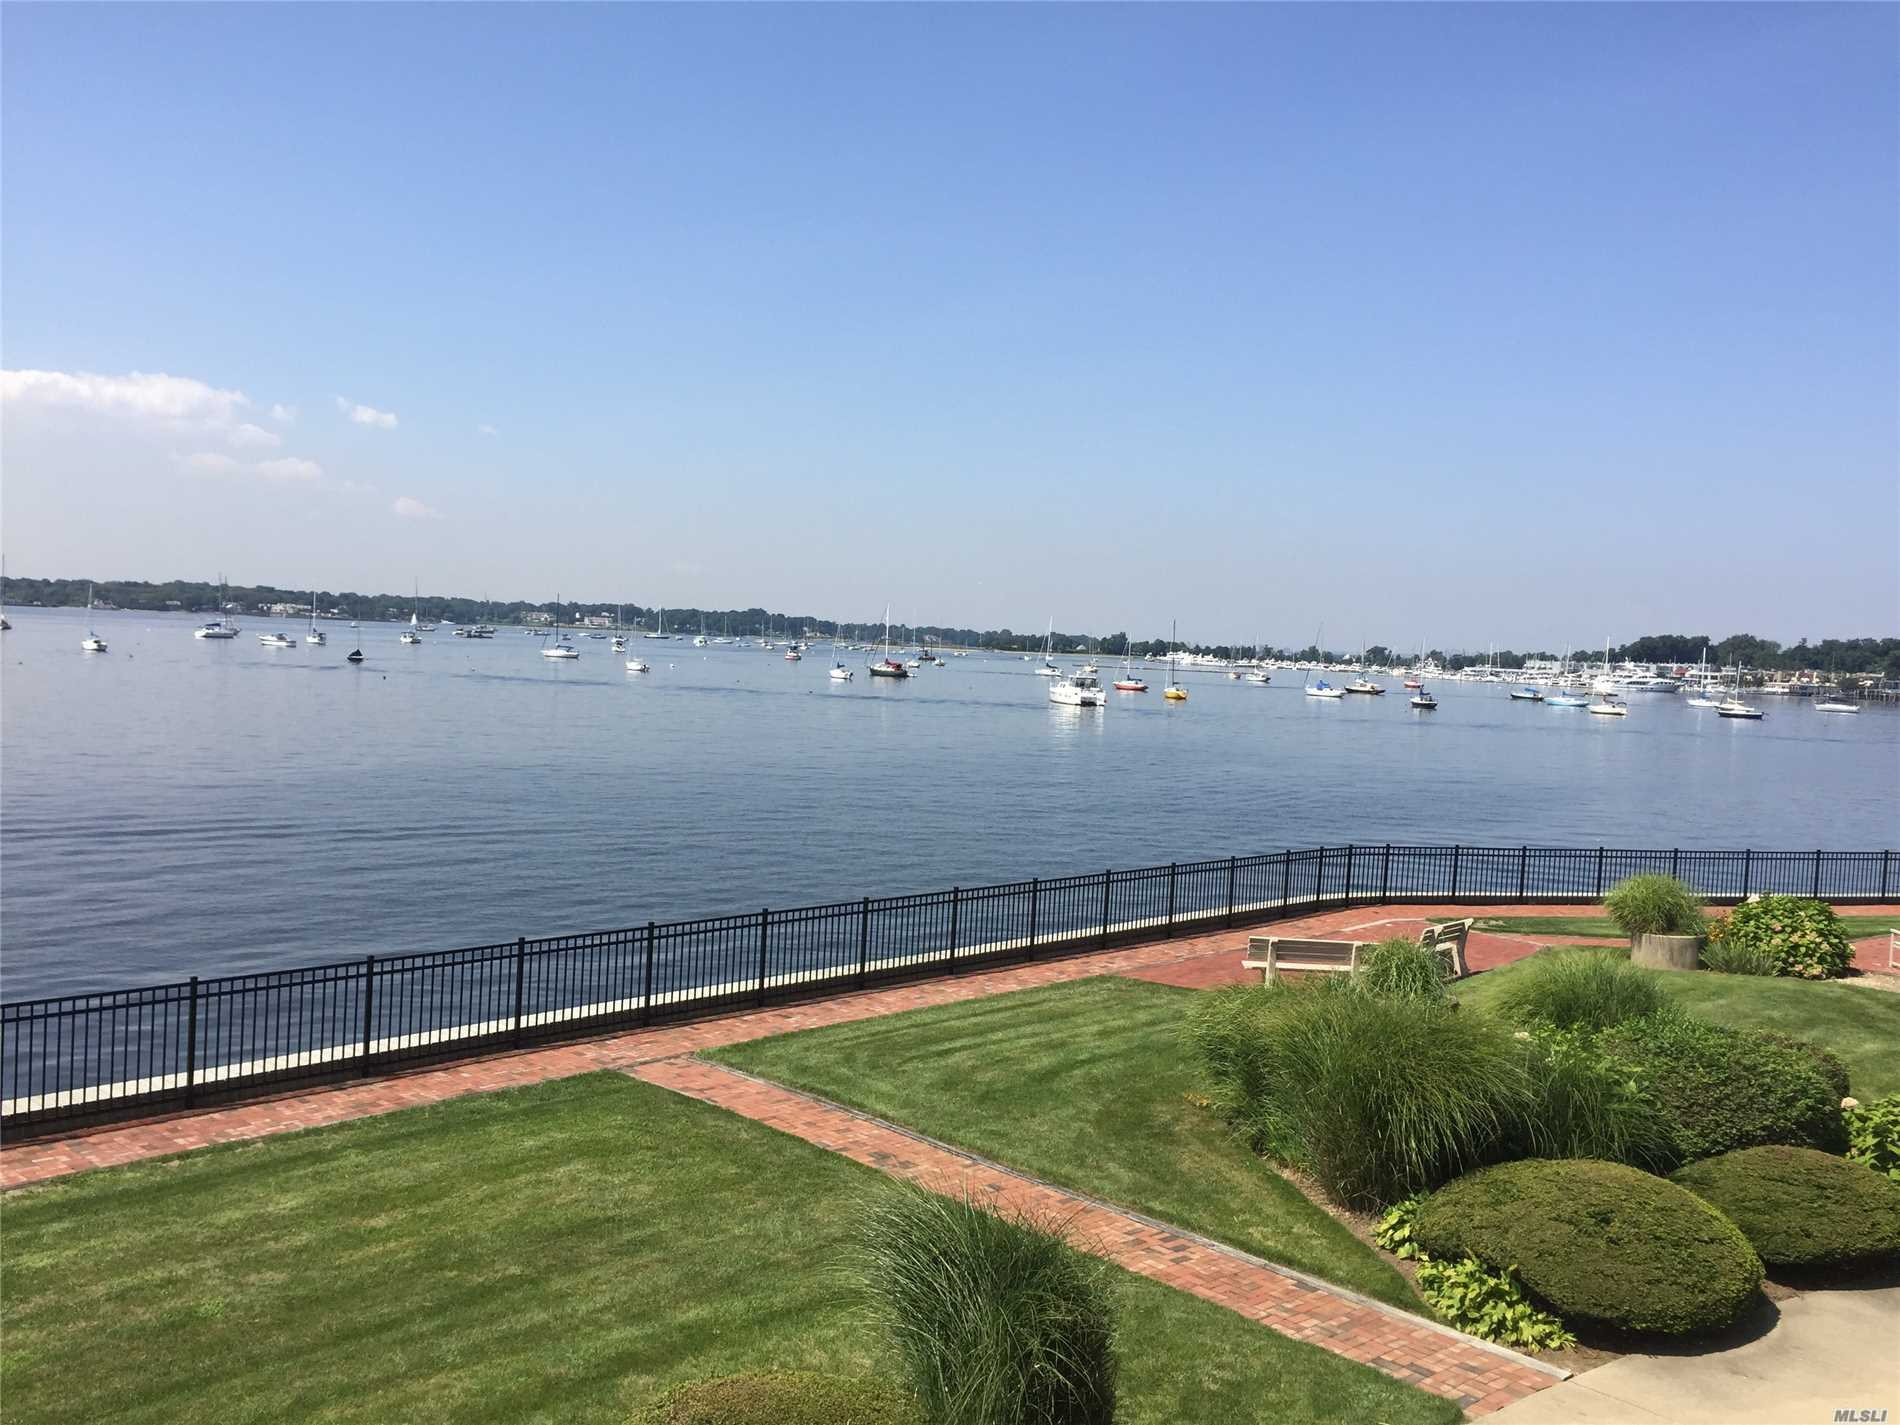 Prime Waterfront Location! Spectacular Water Views From Terrace & Every Room. Larger One Bedroom, Updated Eik Opens To Terrace W/Electric Awning. All Hw Fls. Community Offers Waterfront Pool/Kiddie Pool, Certified Lifeguards, Private Entrance W/Security, Resident Superintendent, Meticulous Grounds & Walking Paths Along The Water. Mooring Rights On Manhasset Bay, Kayak Storage & Magnificent Sunsets! Only 35 Min To Nyc By Train & Nearby Shopping. Maint Includes:Taxes, Heat, Water, Insurance, Pkg